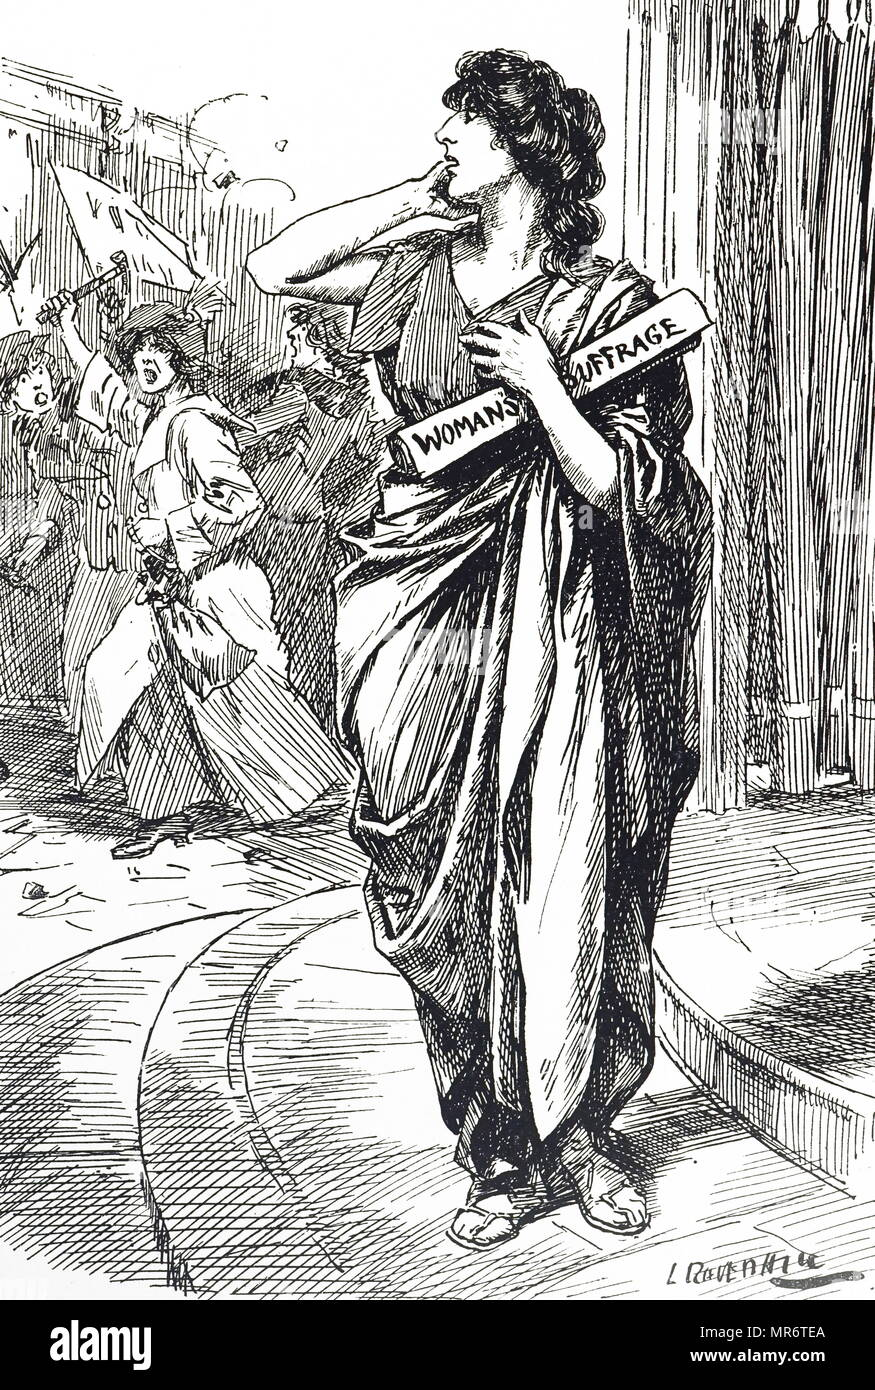 Cartoon commenting on the women's suffrage movement. Dated 20th century Stock Photo